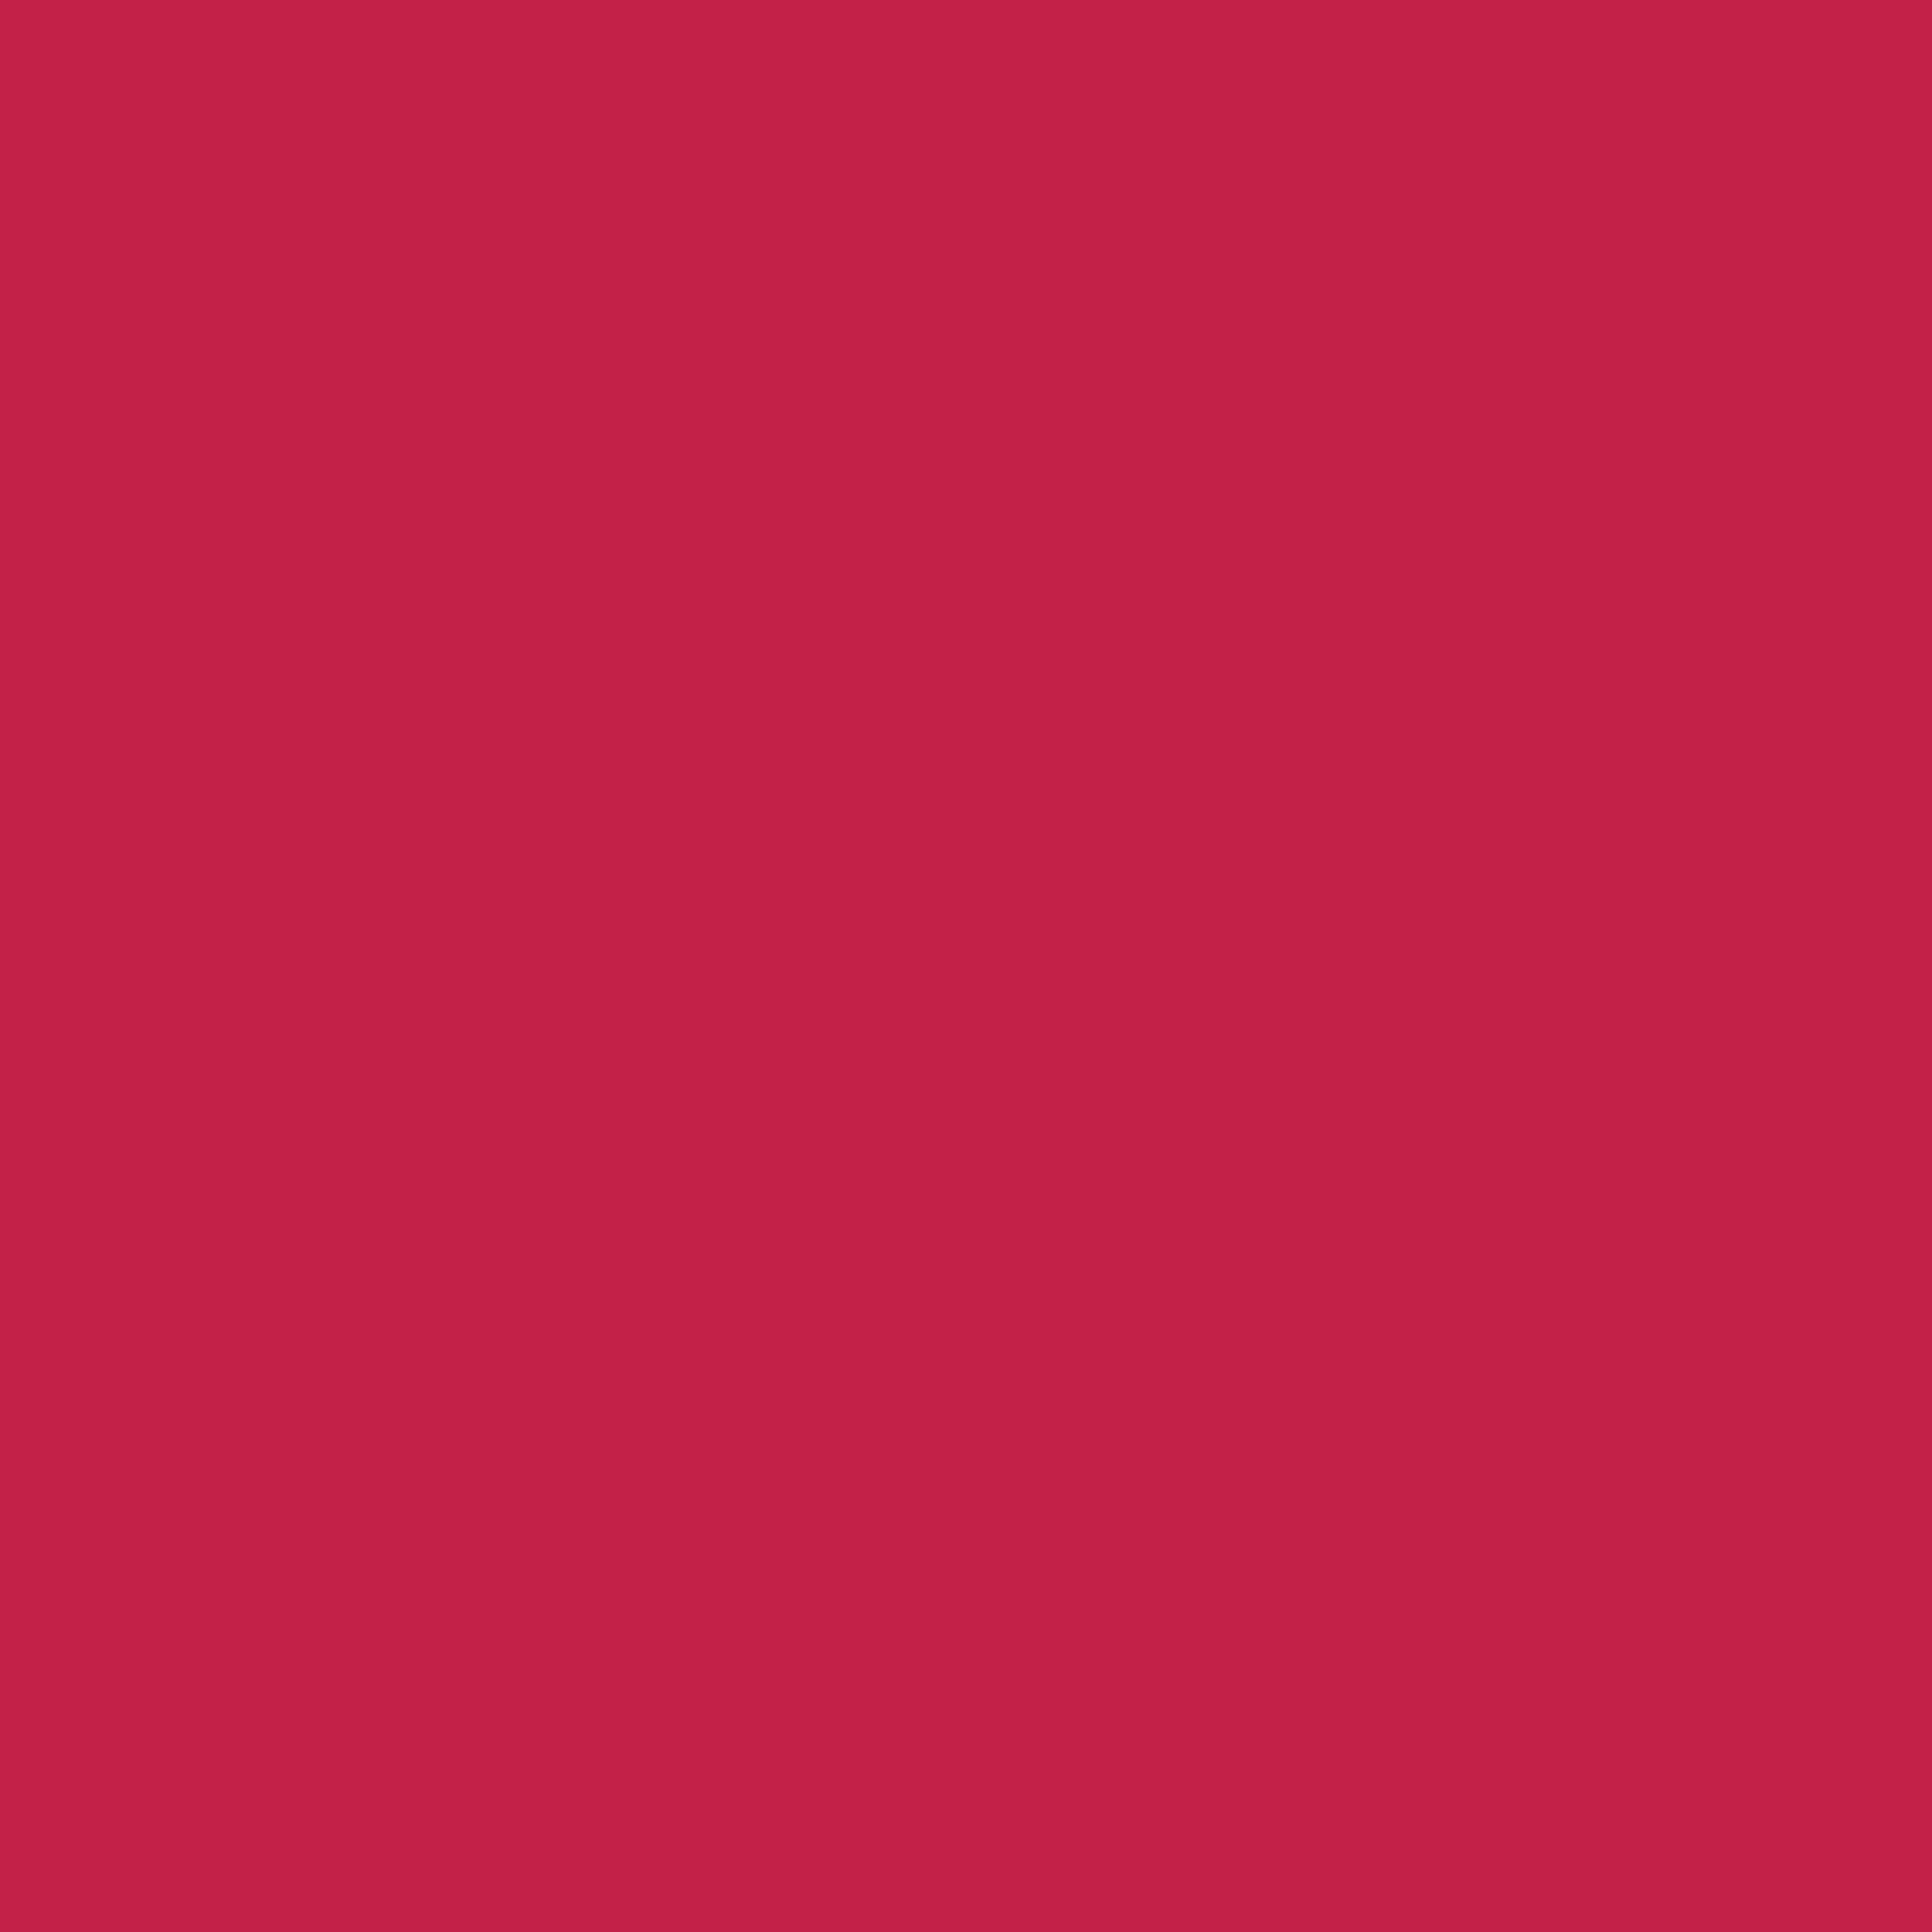 3600x3600 Bright Maroon Solid Color Background